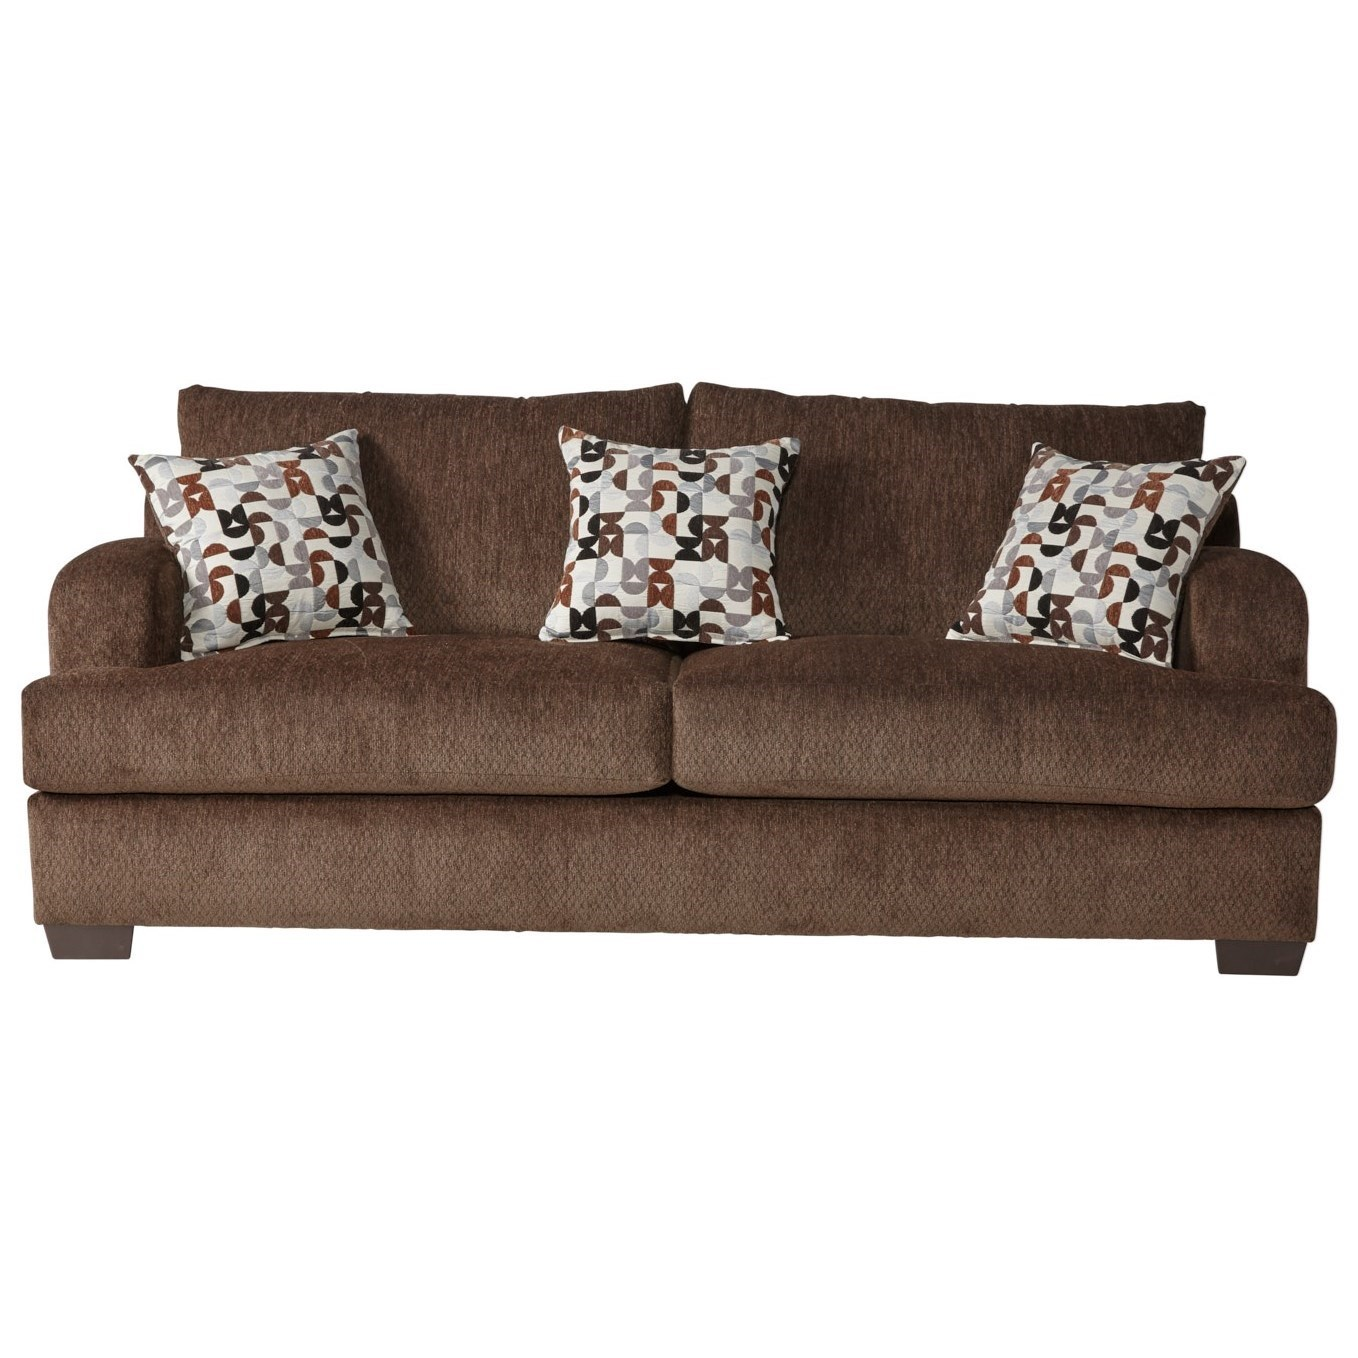 Serta Upholstery by Hughes Furniture 14100 Sofa - Item Number: 14100S-Bronco Sable